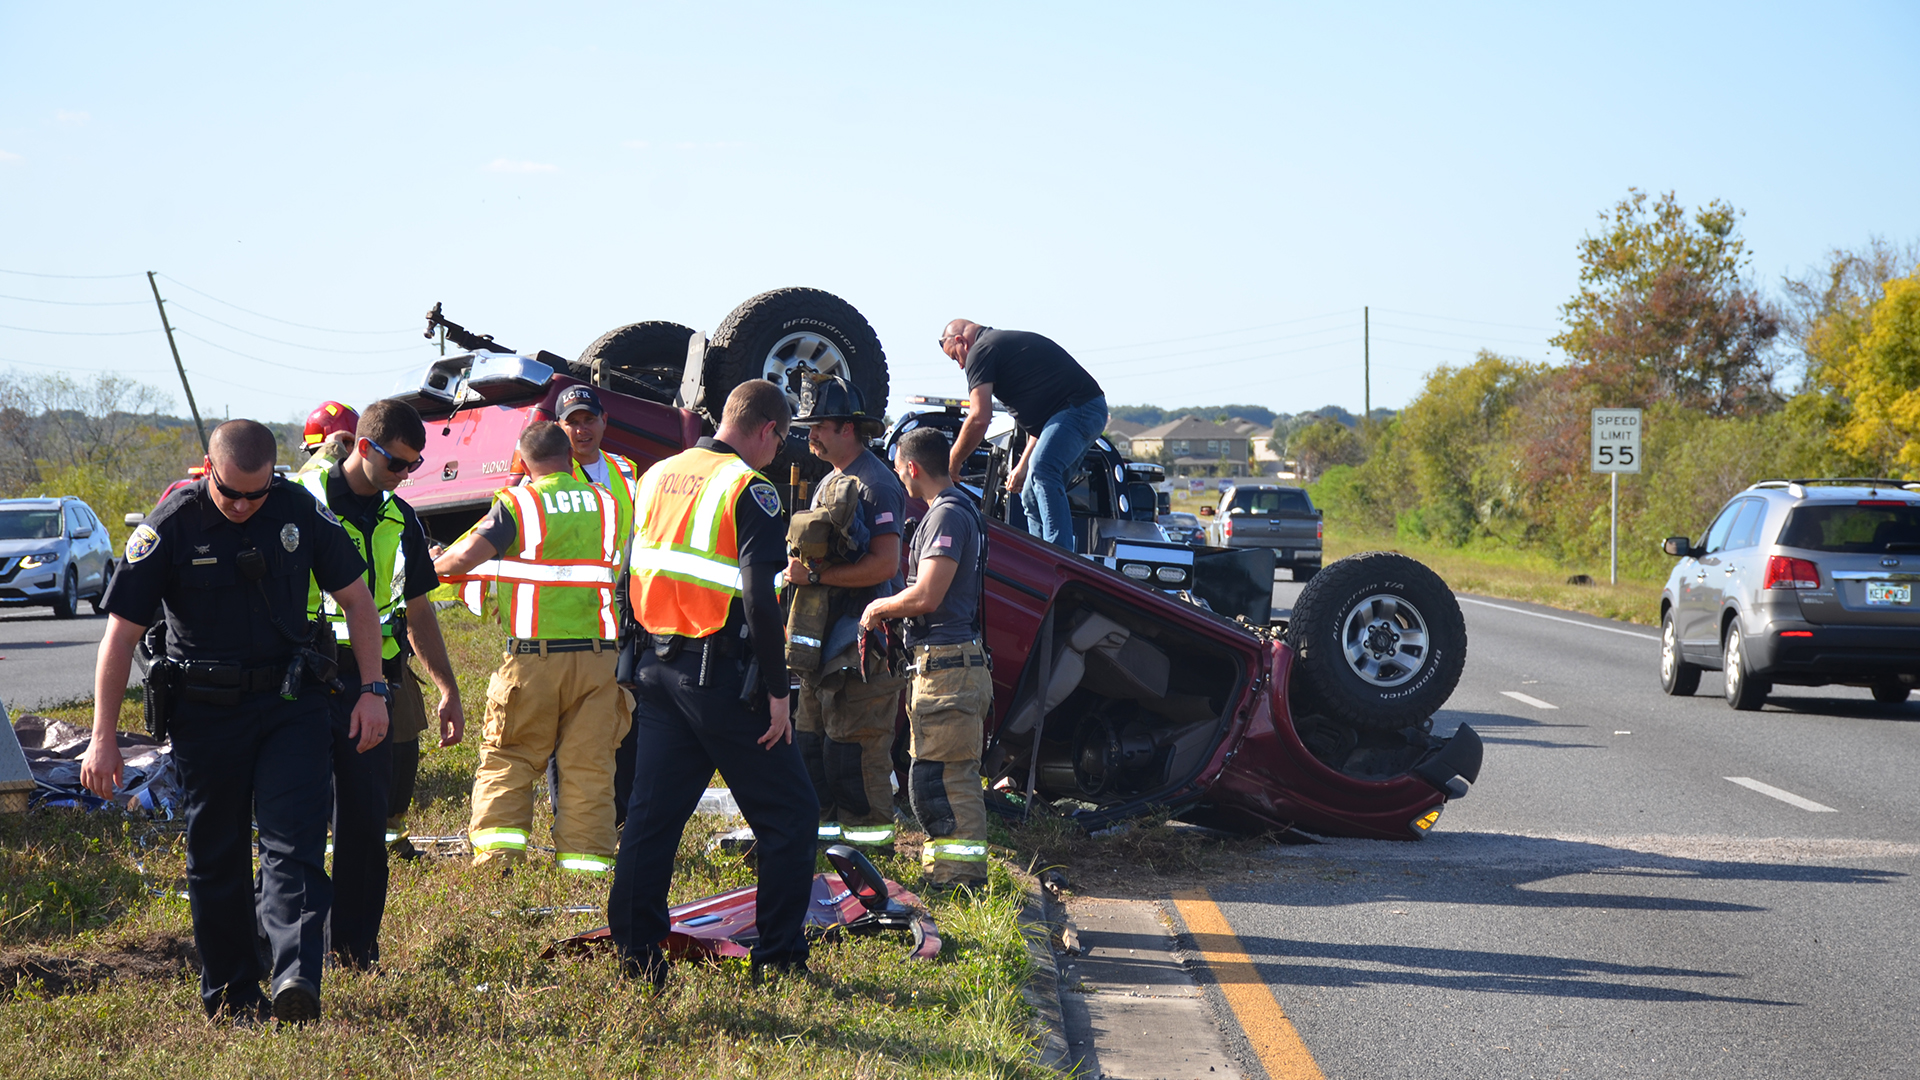 Rollover Accident on Hwy 50 at Groveland City Limit - Clermont Report